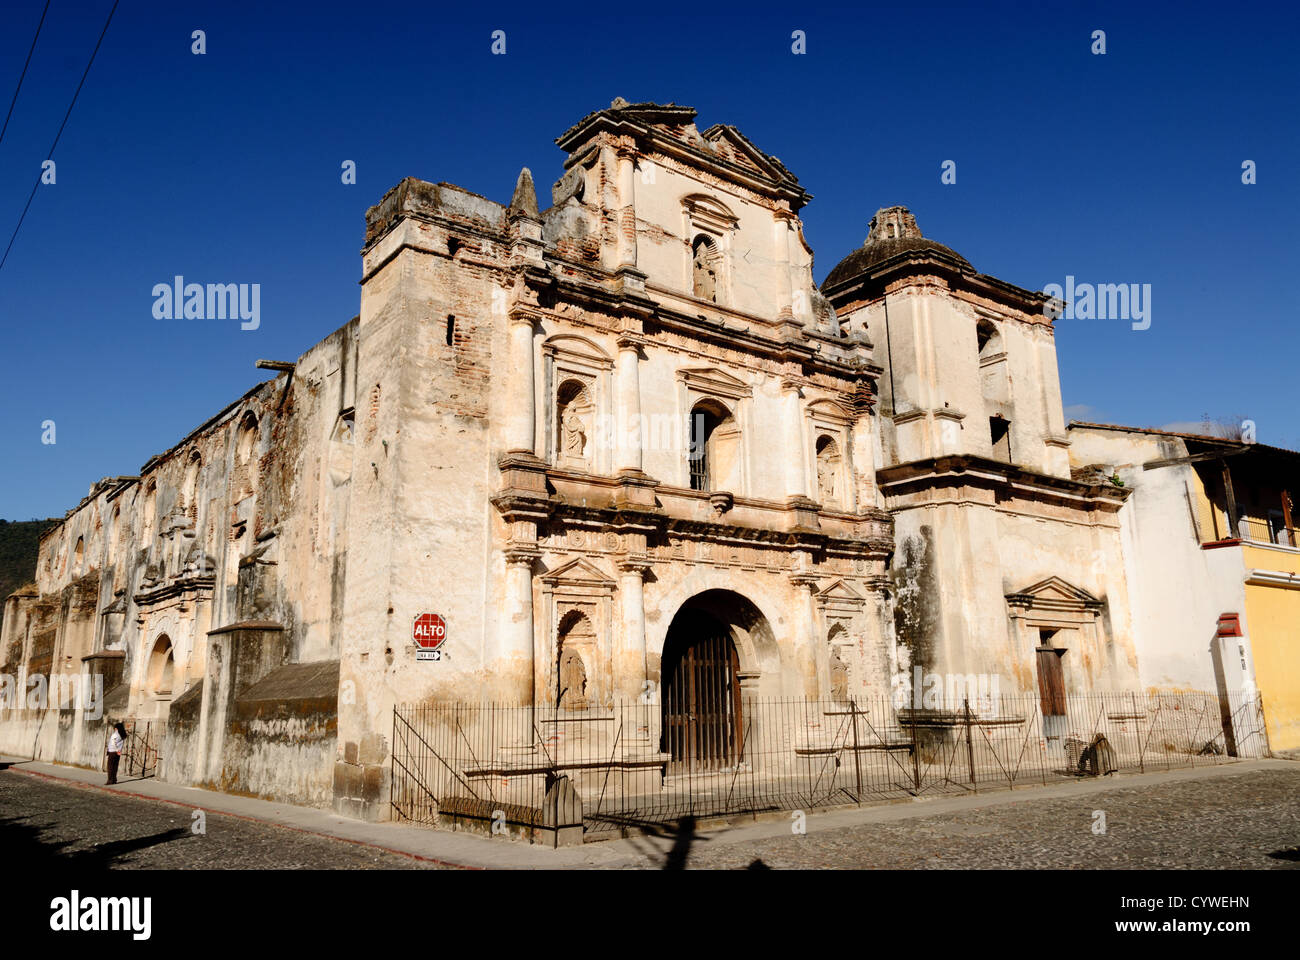 Famous For Its Well Preserved Spanish Baroque Architecture As A Number Of Ruins From Earthquakes Antigua Guatemala Is UNESCO World Heritage Site